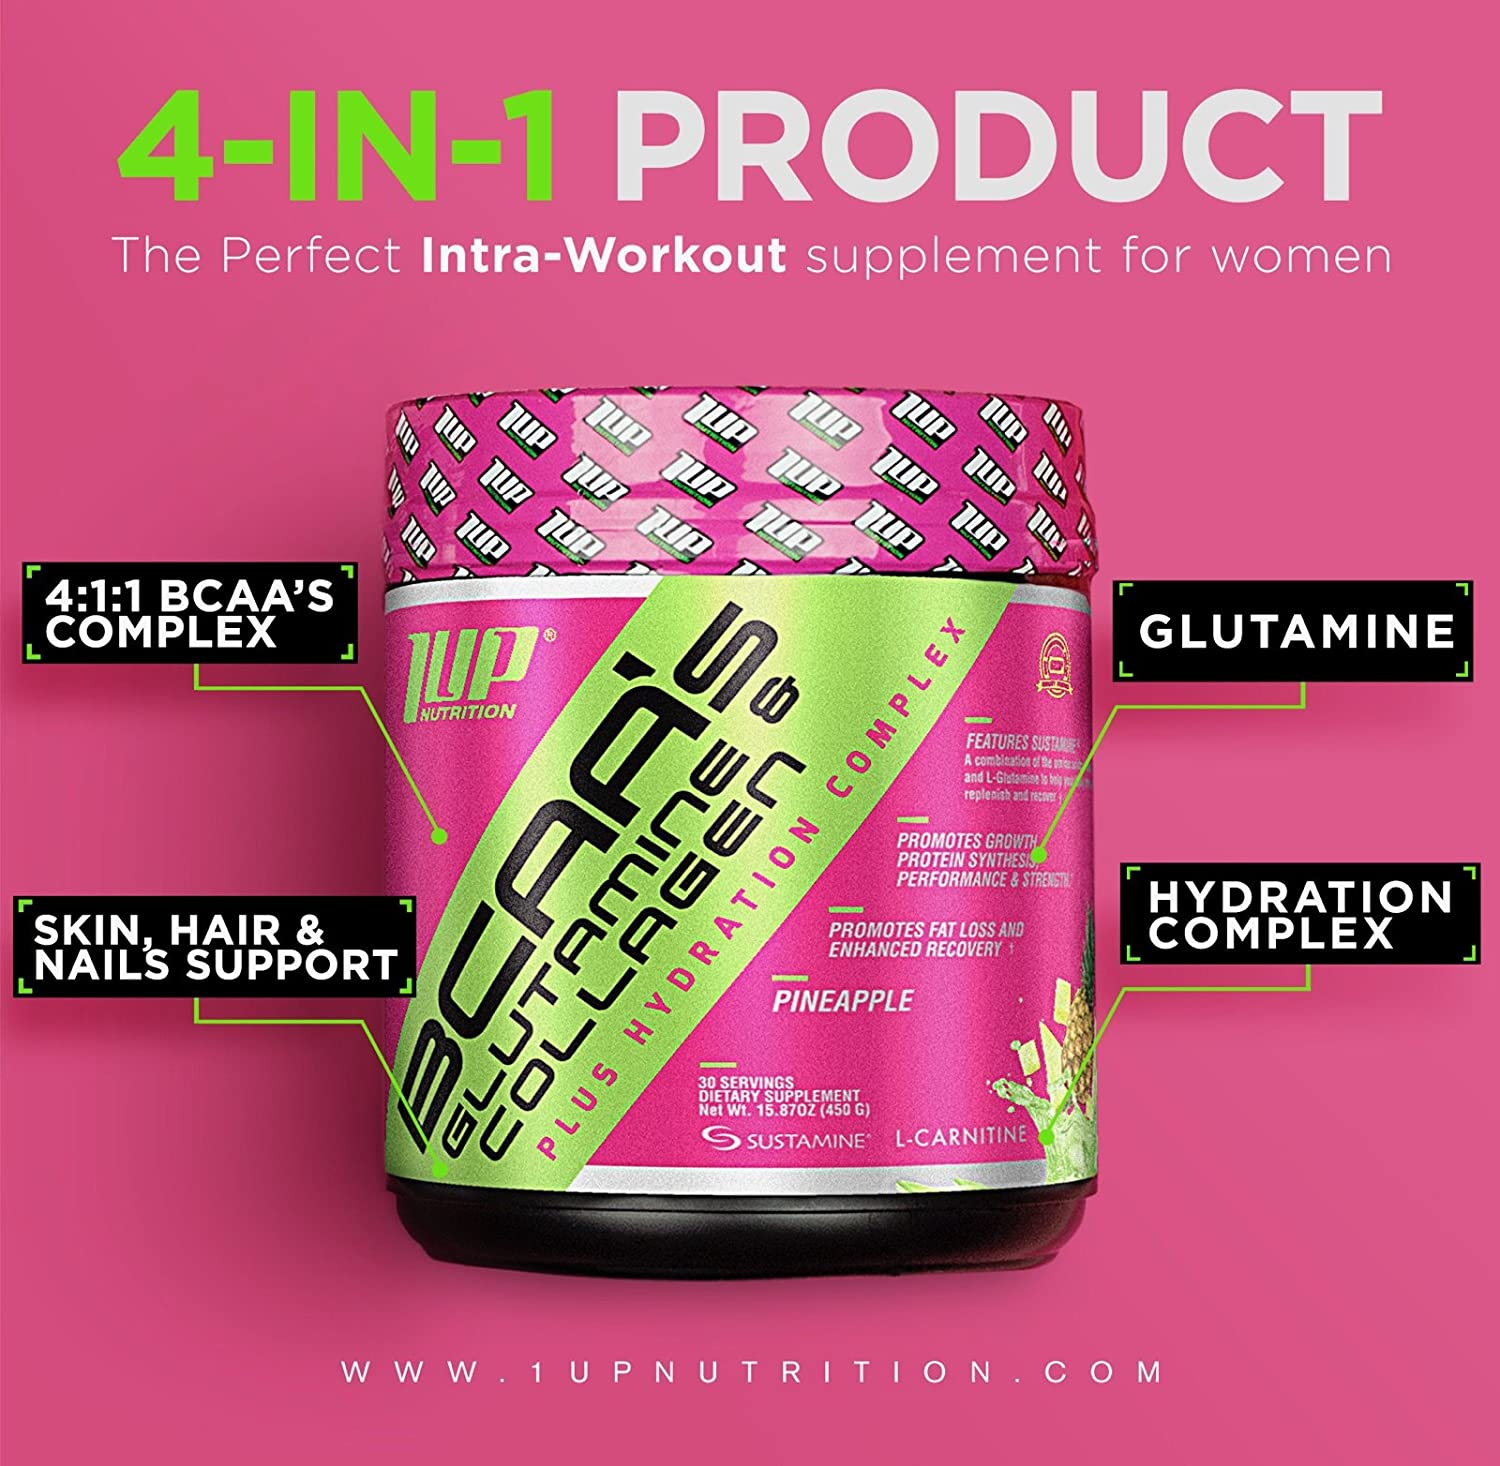 Amazon.com: 1UP Nutrition - Her BCAA's Glutamine & Collagen, Plus Hydration Complex, (Pineapple): Health & Personal Care